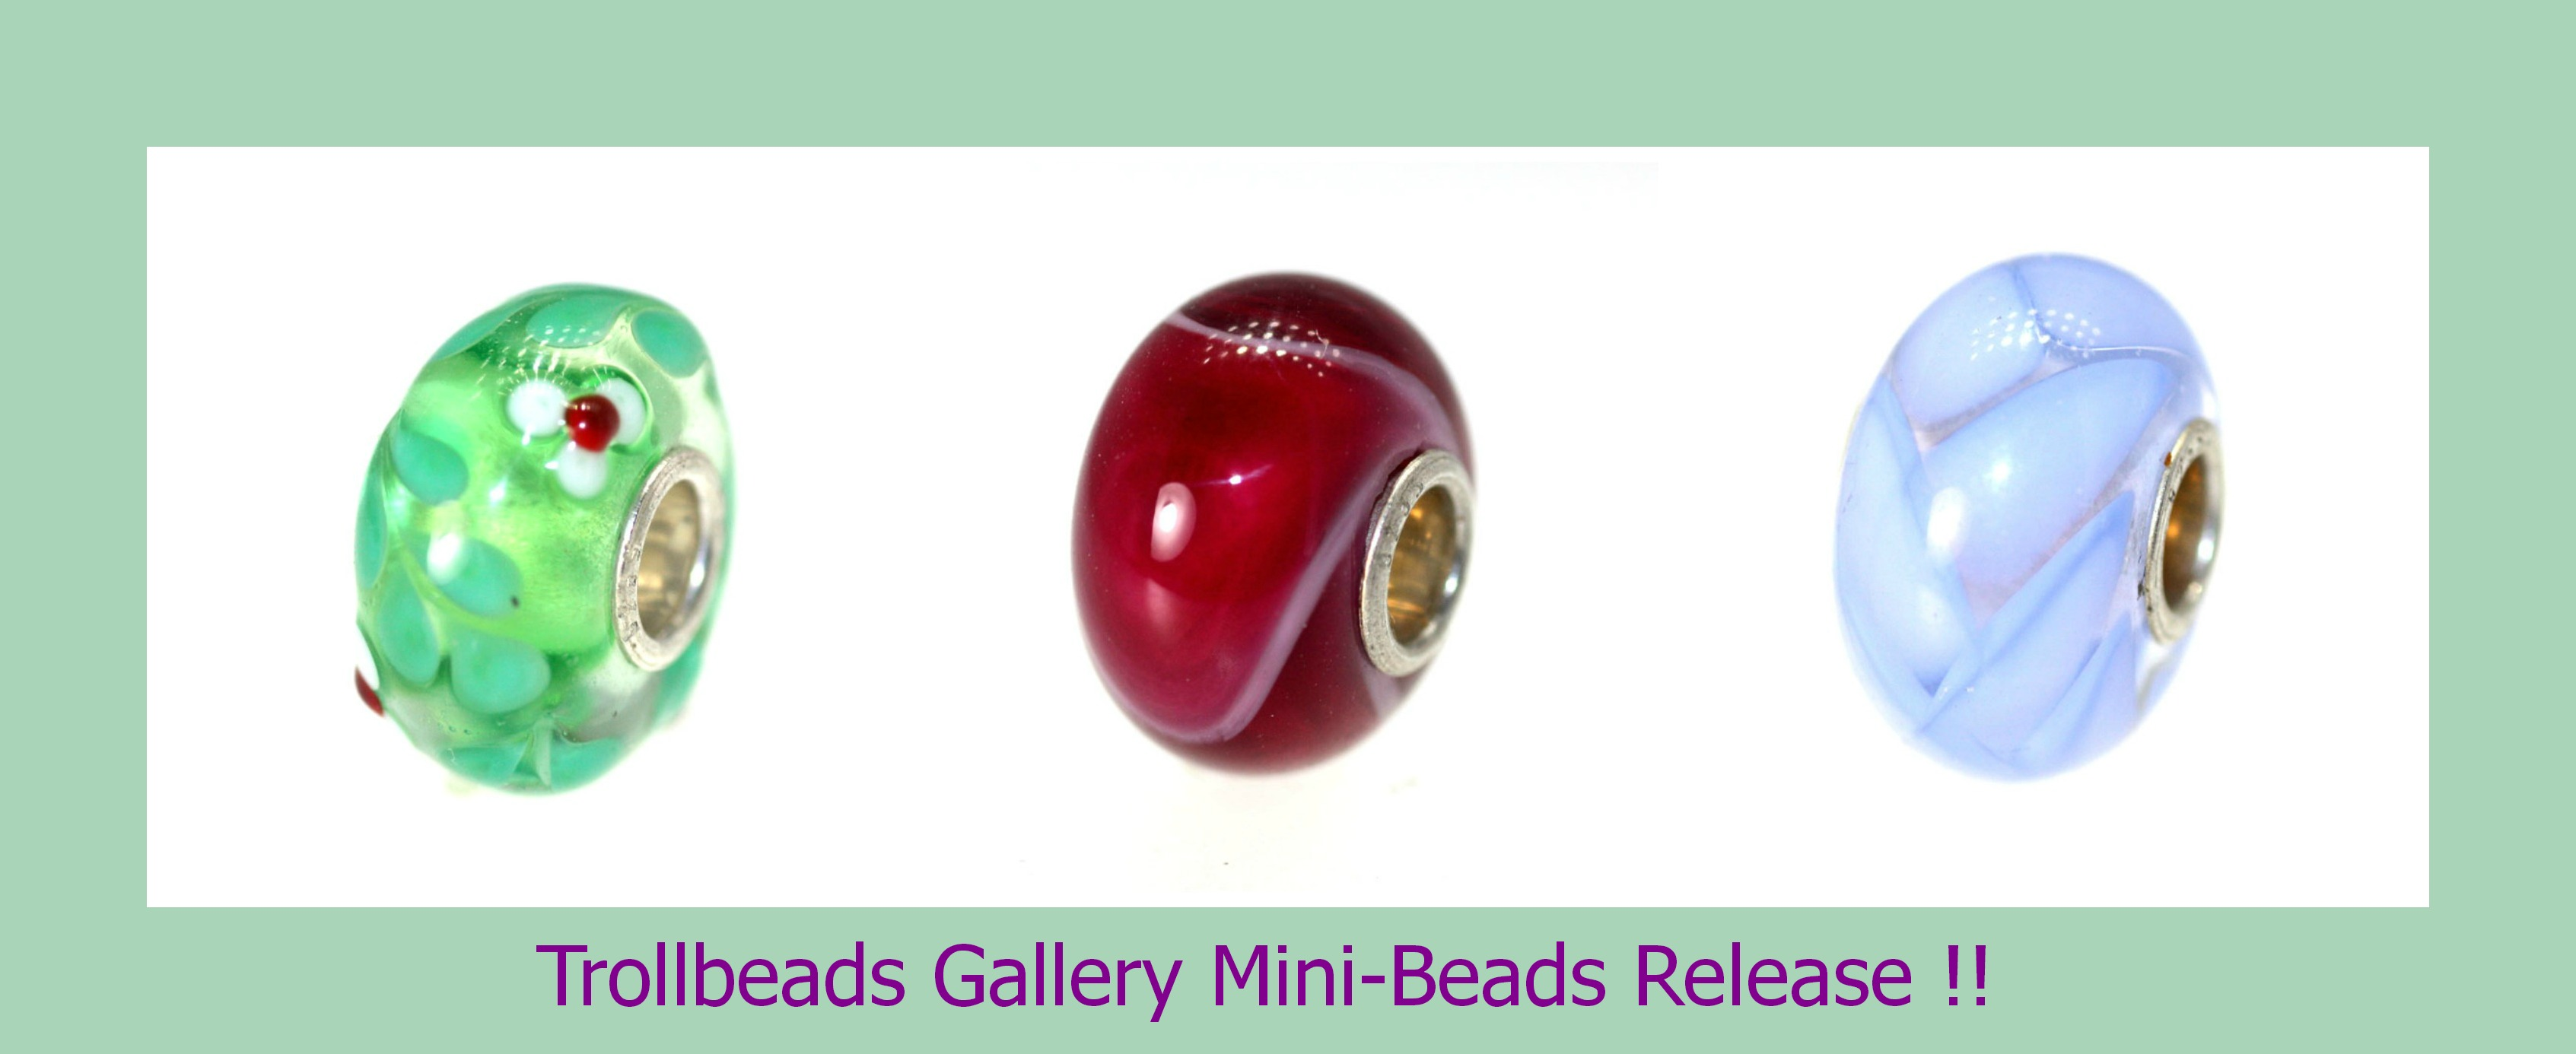 Trollbeads Gallery collage mini